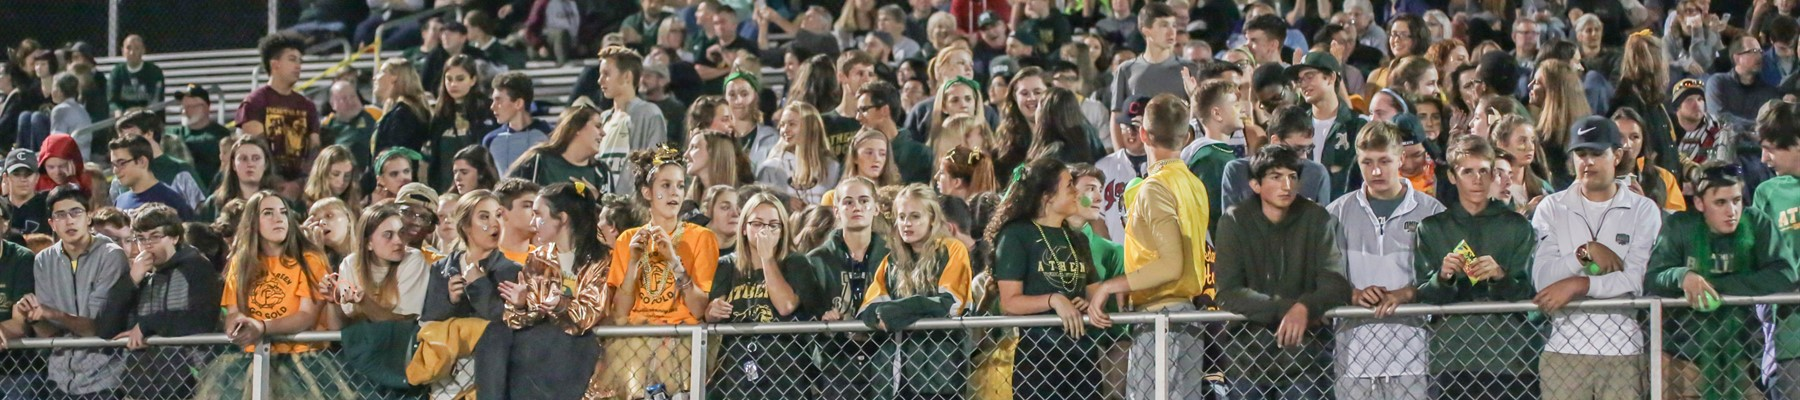 Photo of Students at AHS Homecoming Football Game